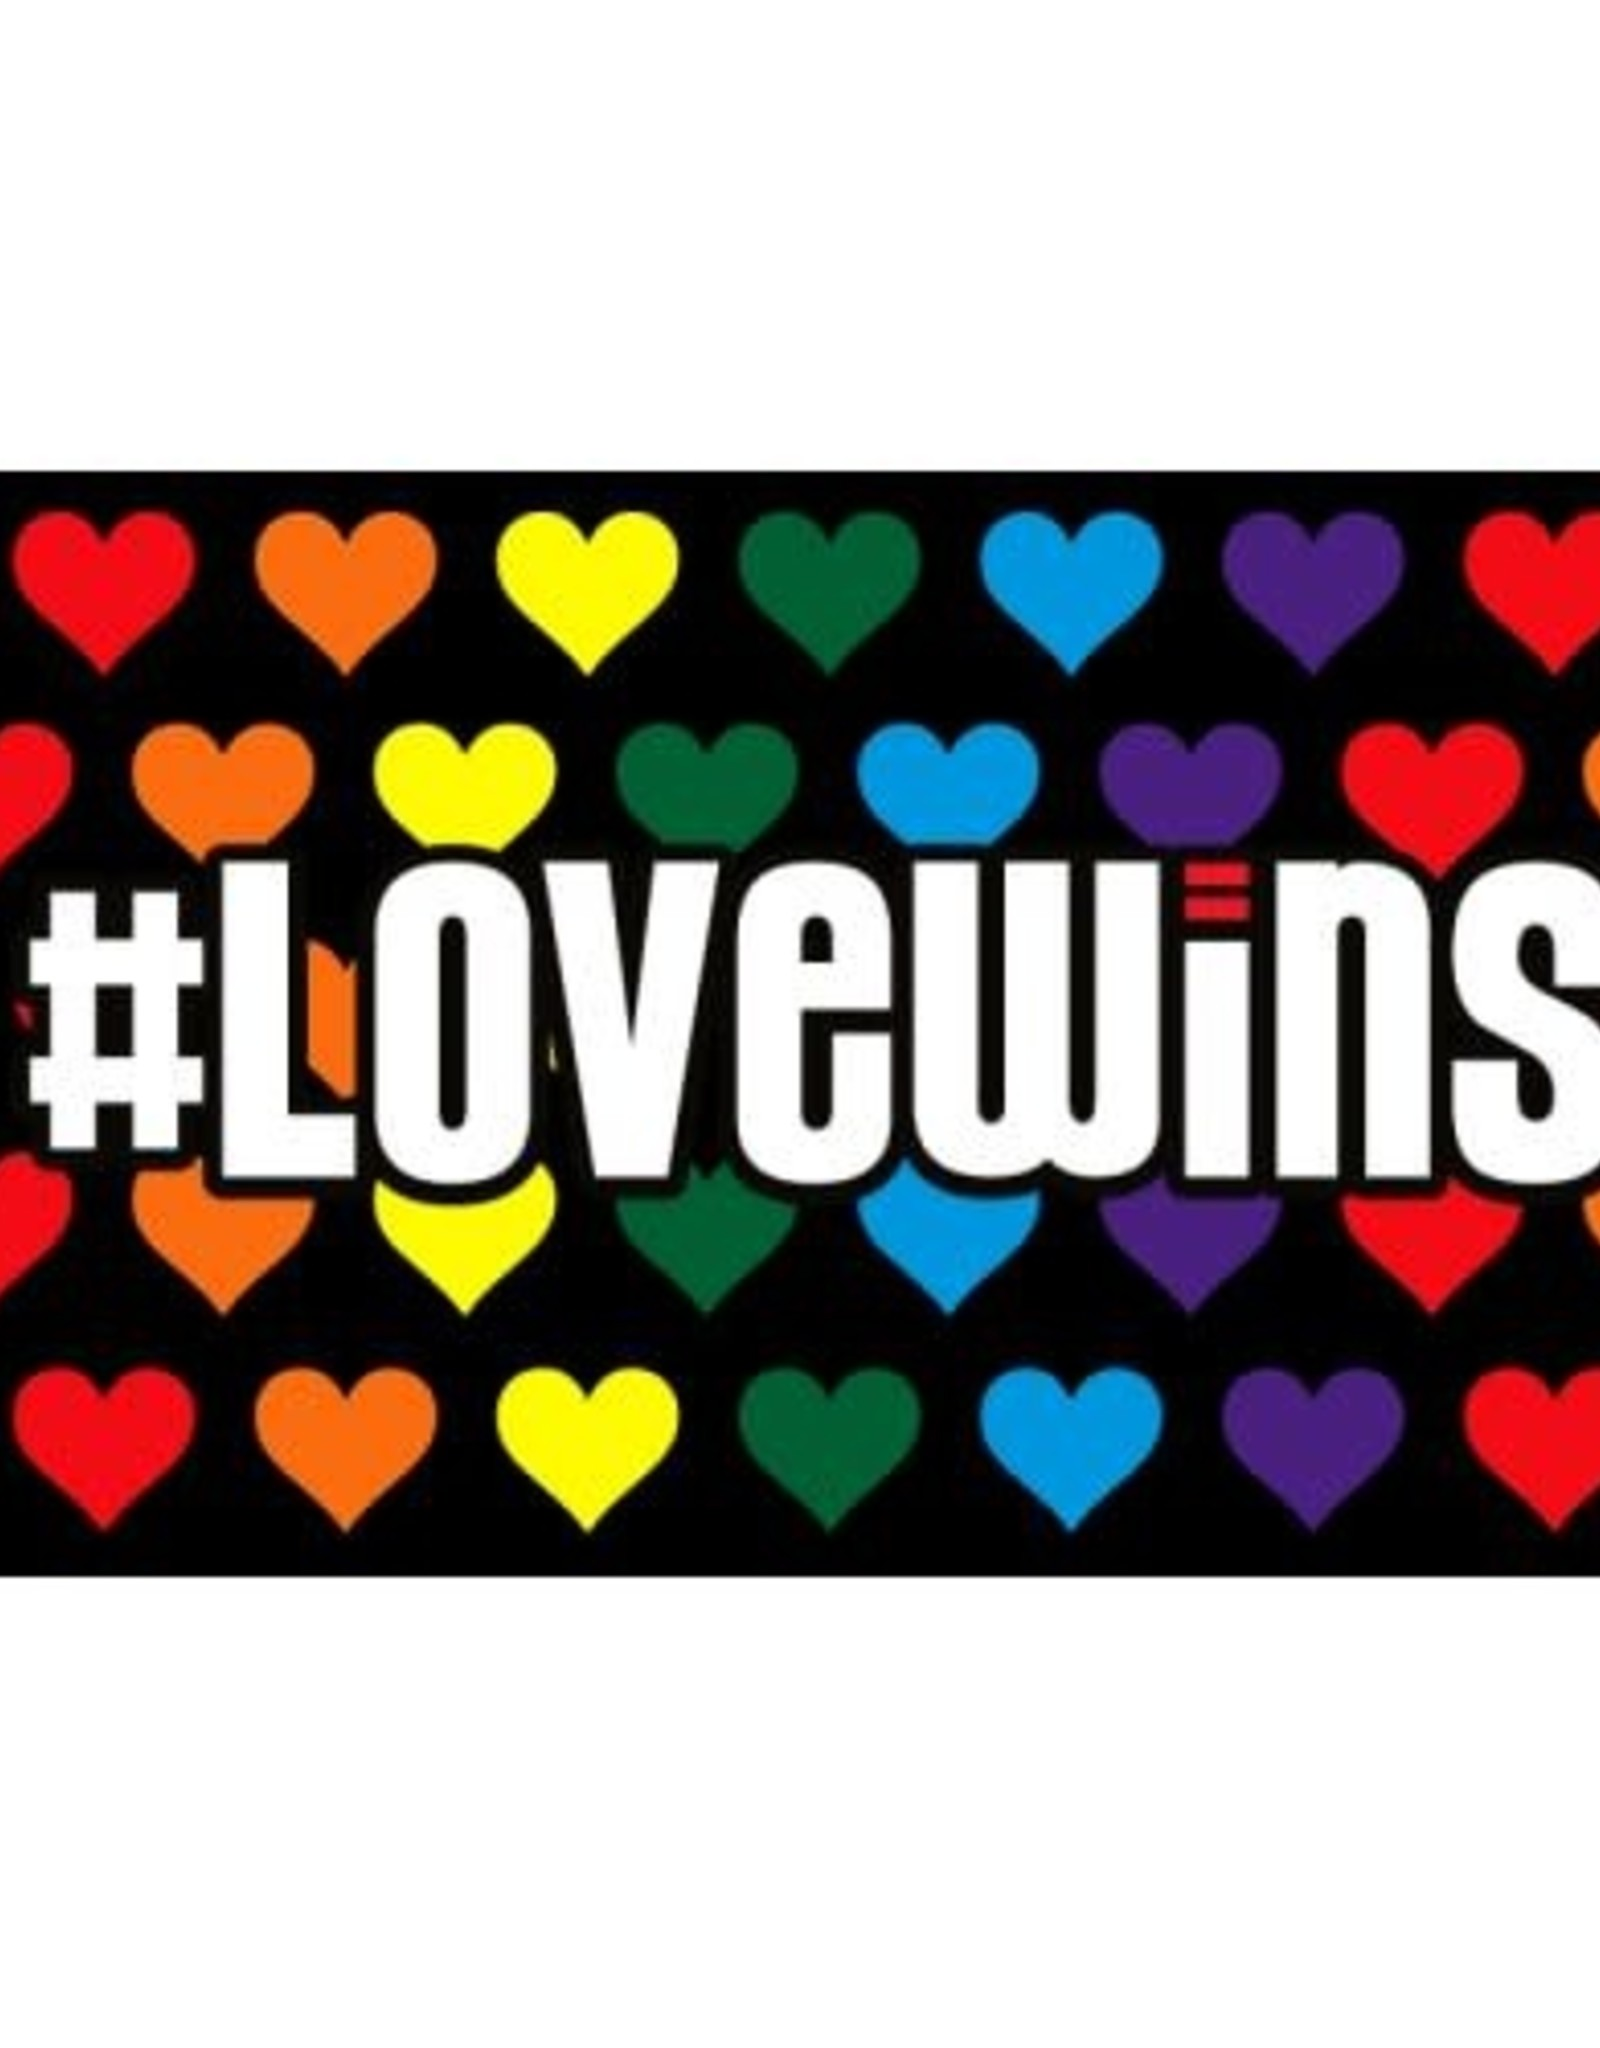 Love Wins Polyester flag 3'5'